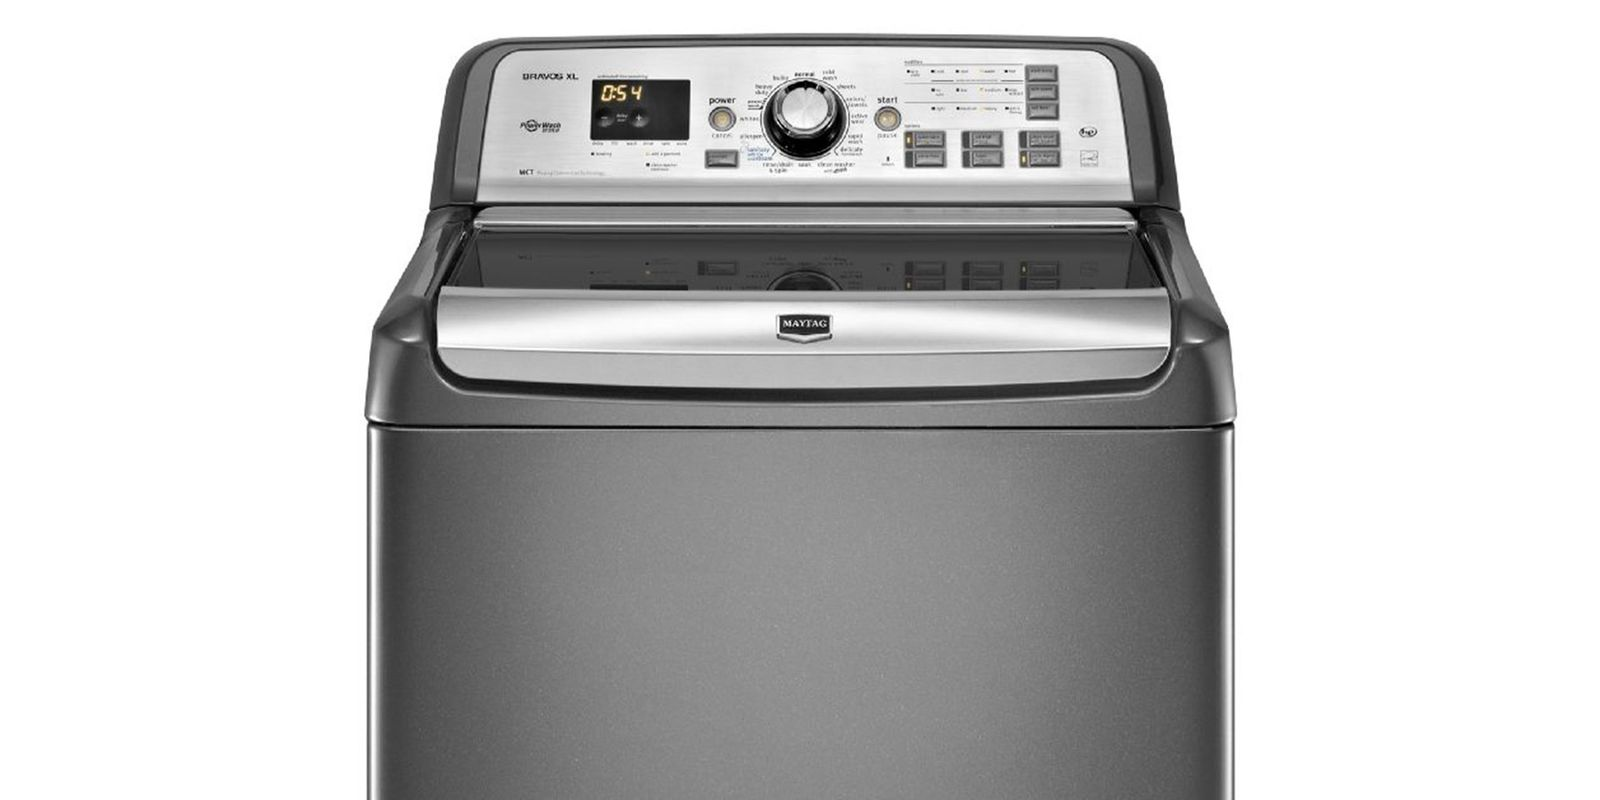 The best top load washer on the market - Bravos Xl He Top Load Washer With Steam Mvwb980bg Review